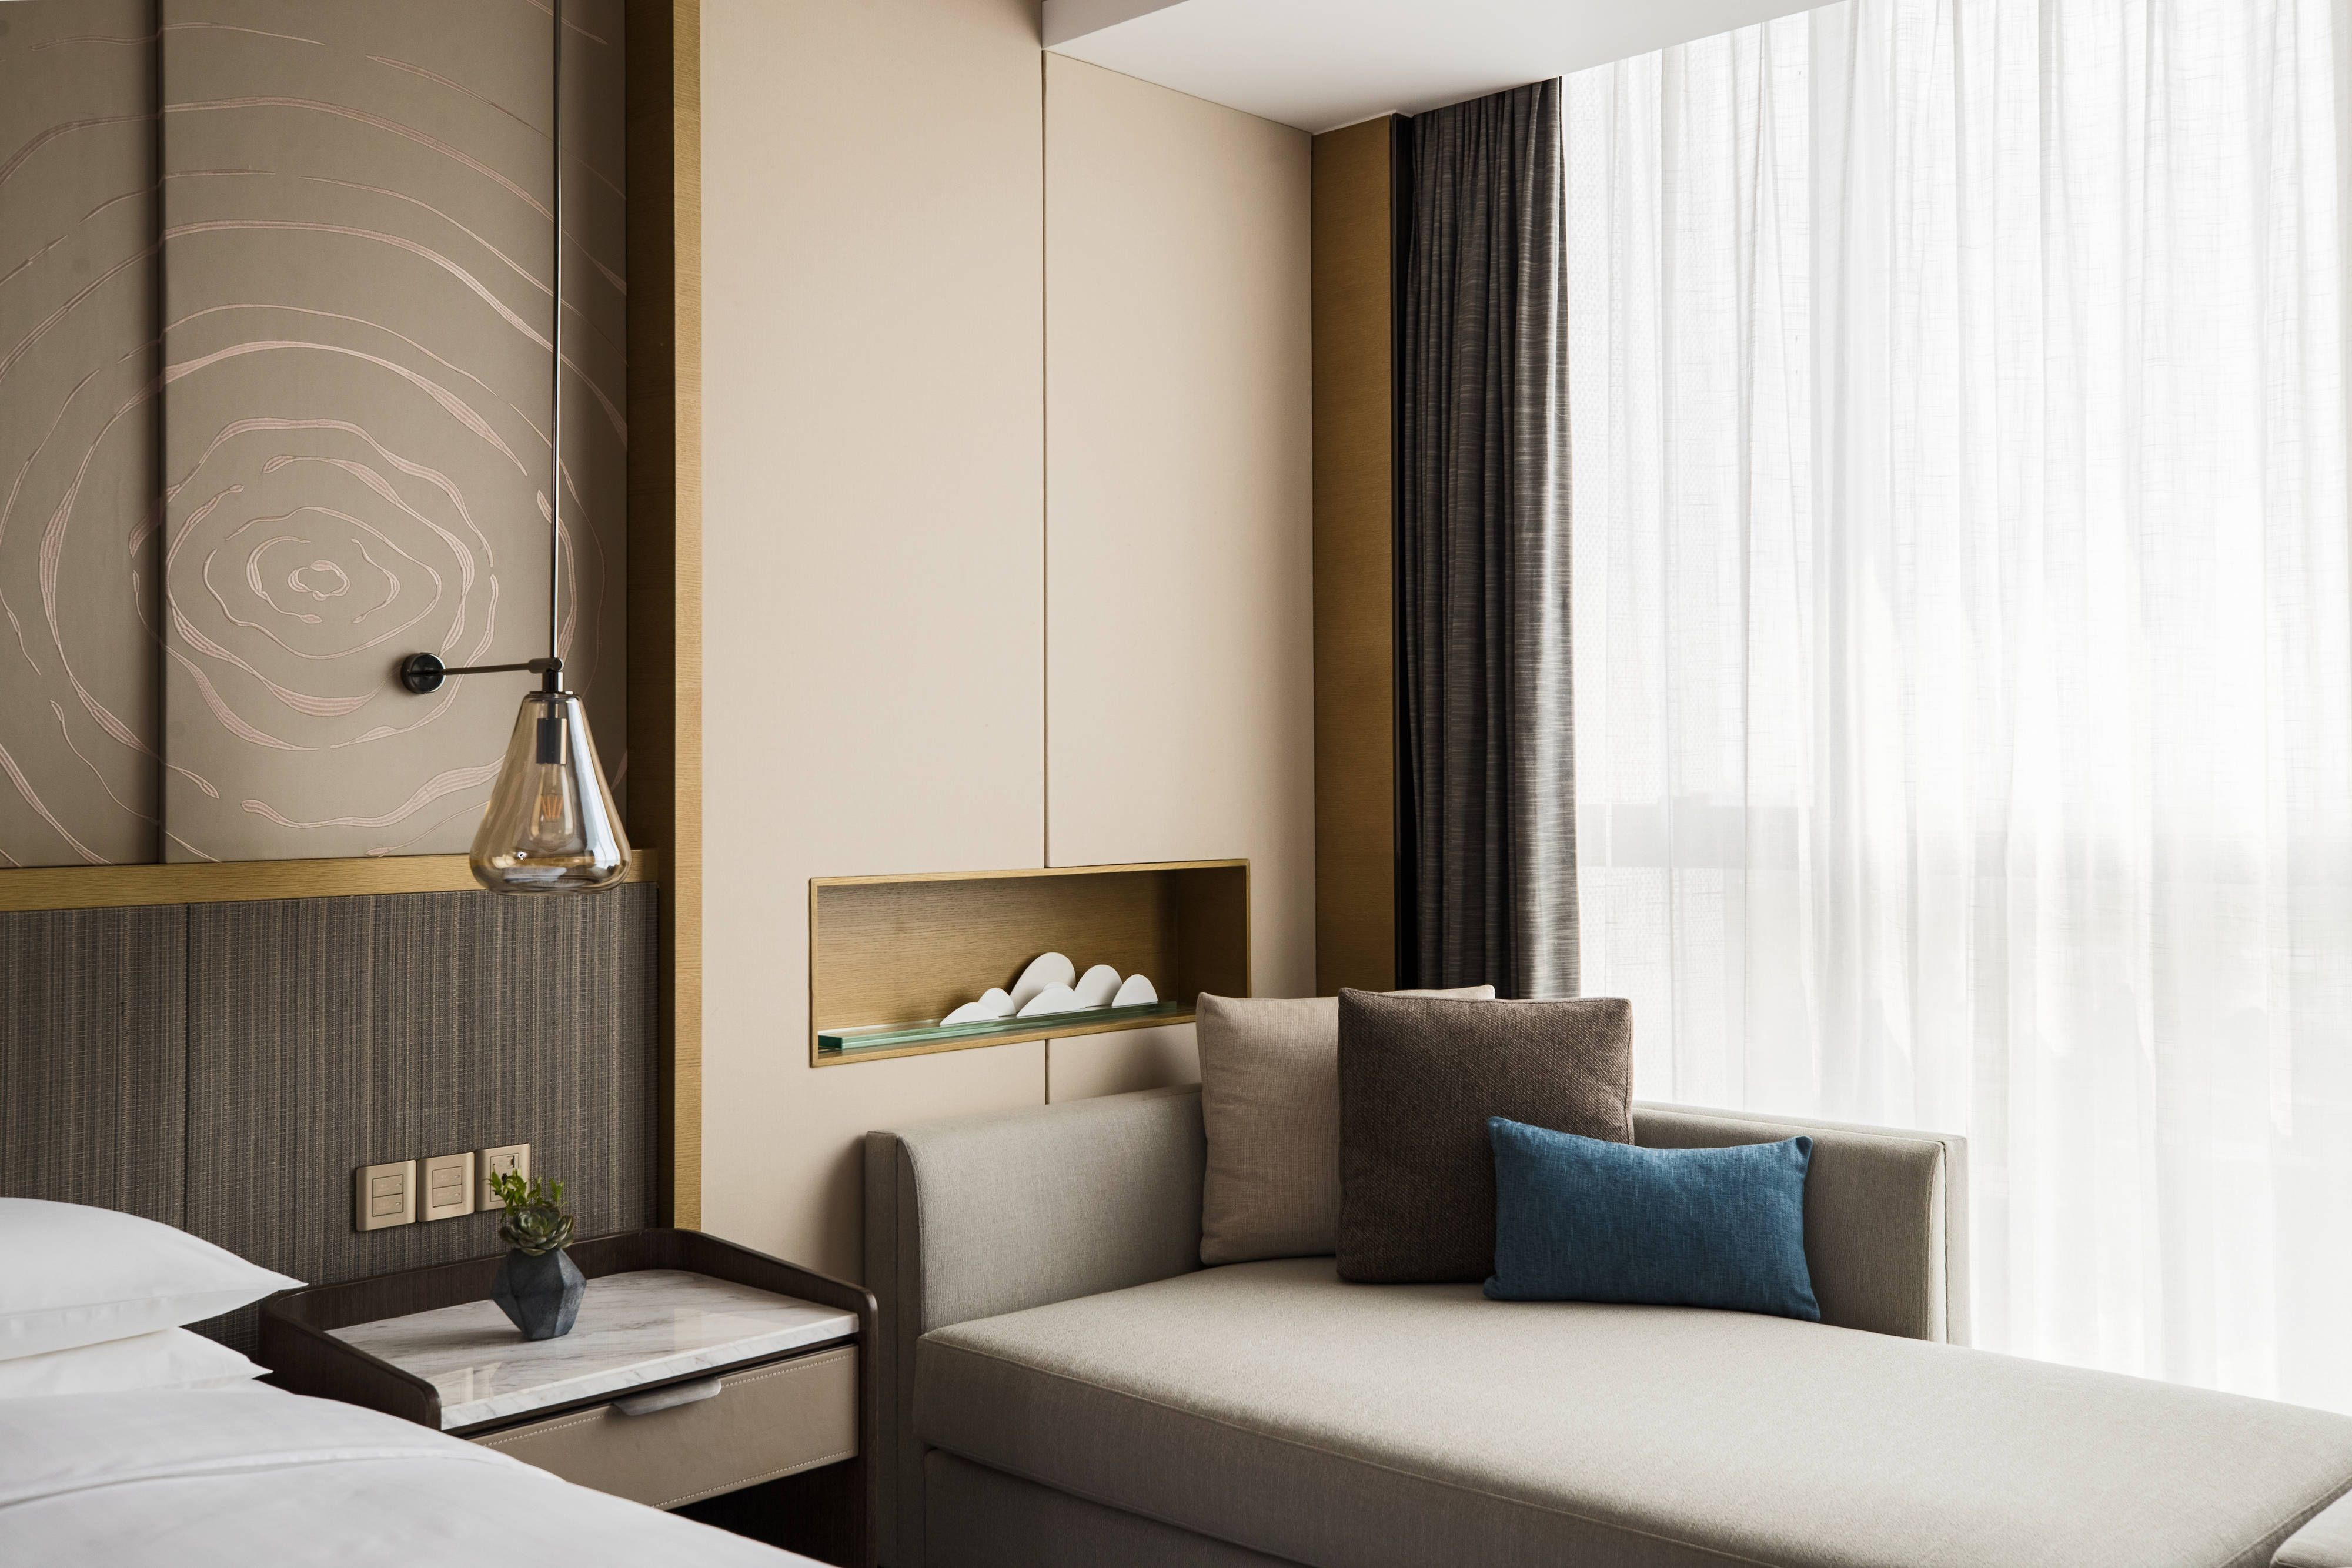 Suzhou Marriott Hotel Taihu Lake Double Double Guest Room Suite Travel Hotels Modern Bedroom Interior Hotel Interior Design Marriott Hotels Rooms